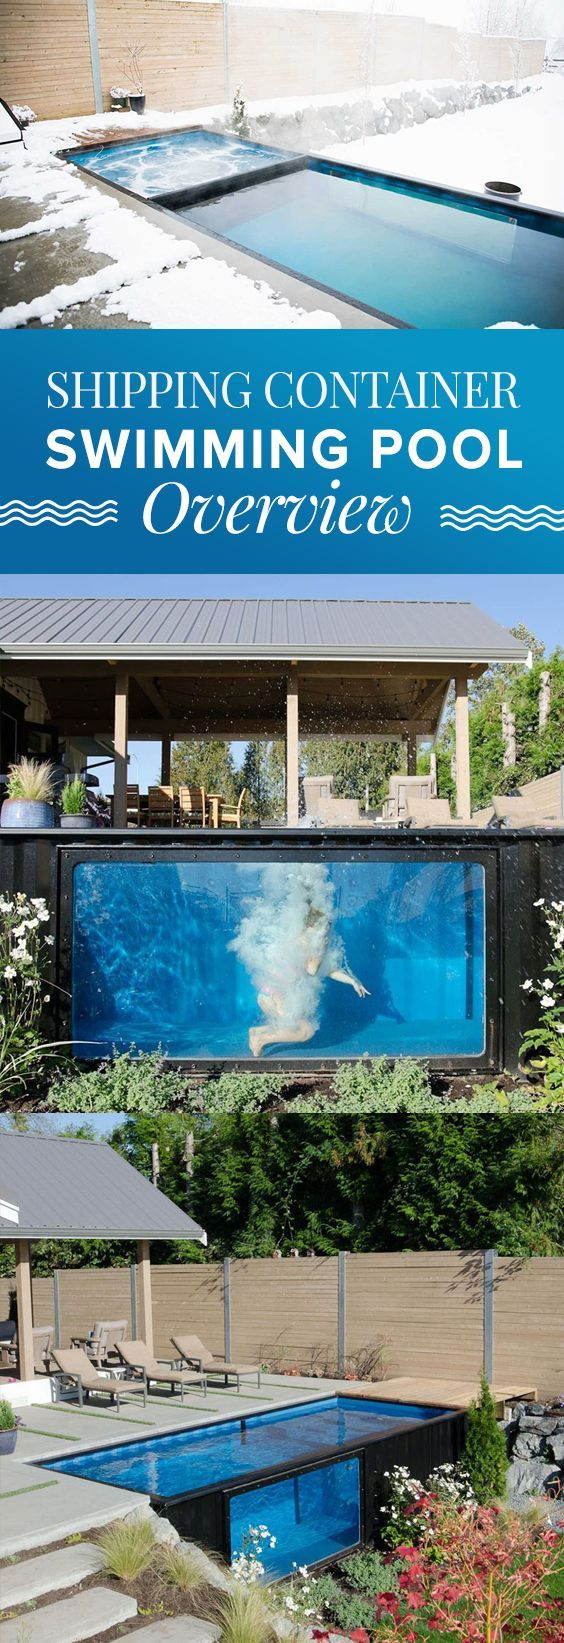 Shipping Container Swimming Pool: An Innovative Pool Design for Your ...